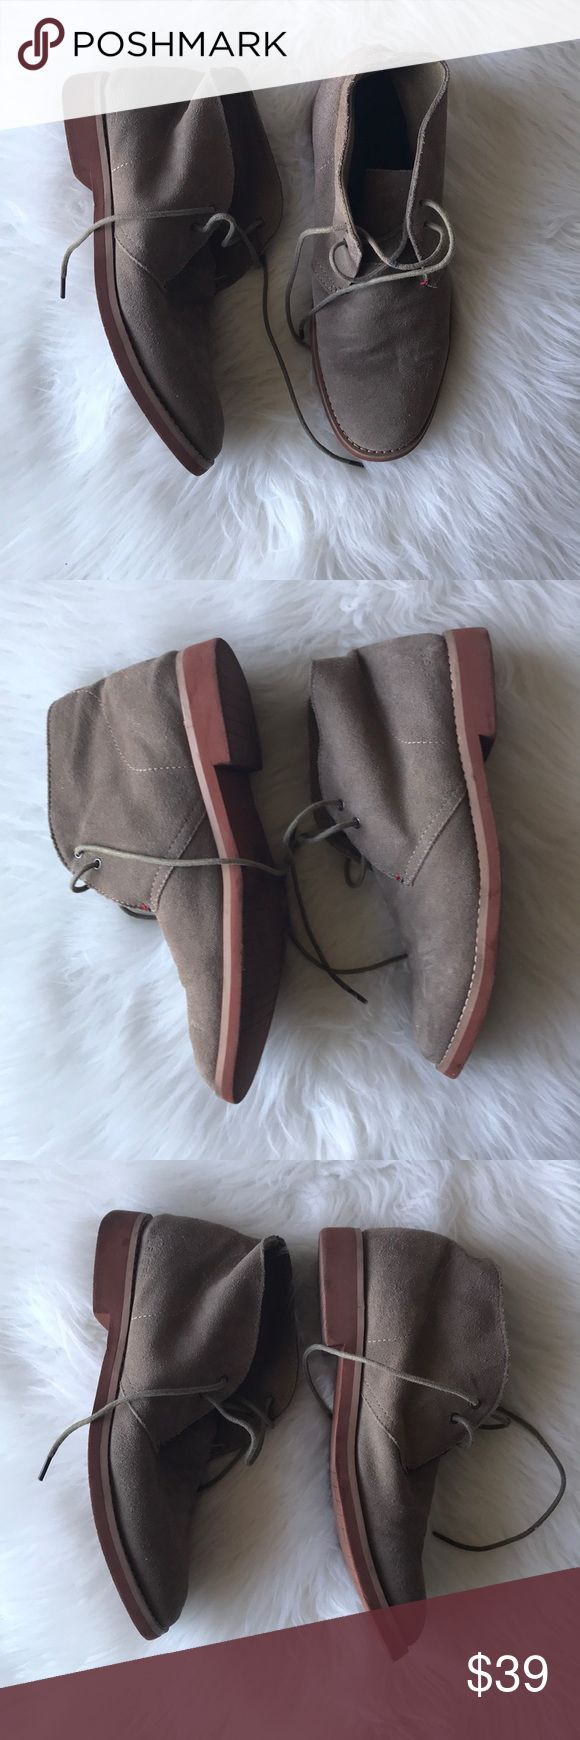 Men's Suede Chukka Boots Great pre-loved condition! Some minimal storage scuffs and wrinkles that will flatten out when worn. Open to reasonable offers. Tommy Hilfiger Shoes Chukka Boots